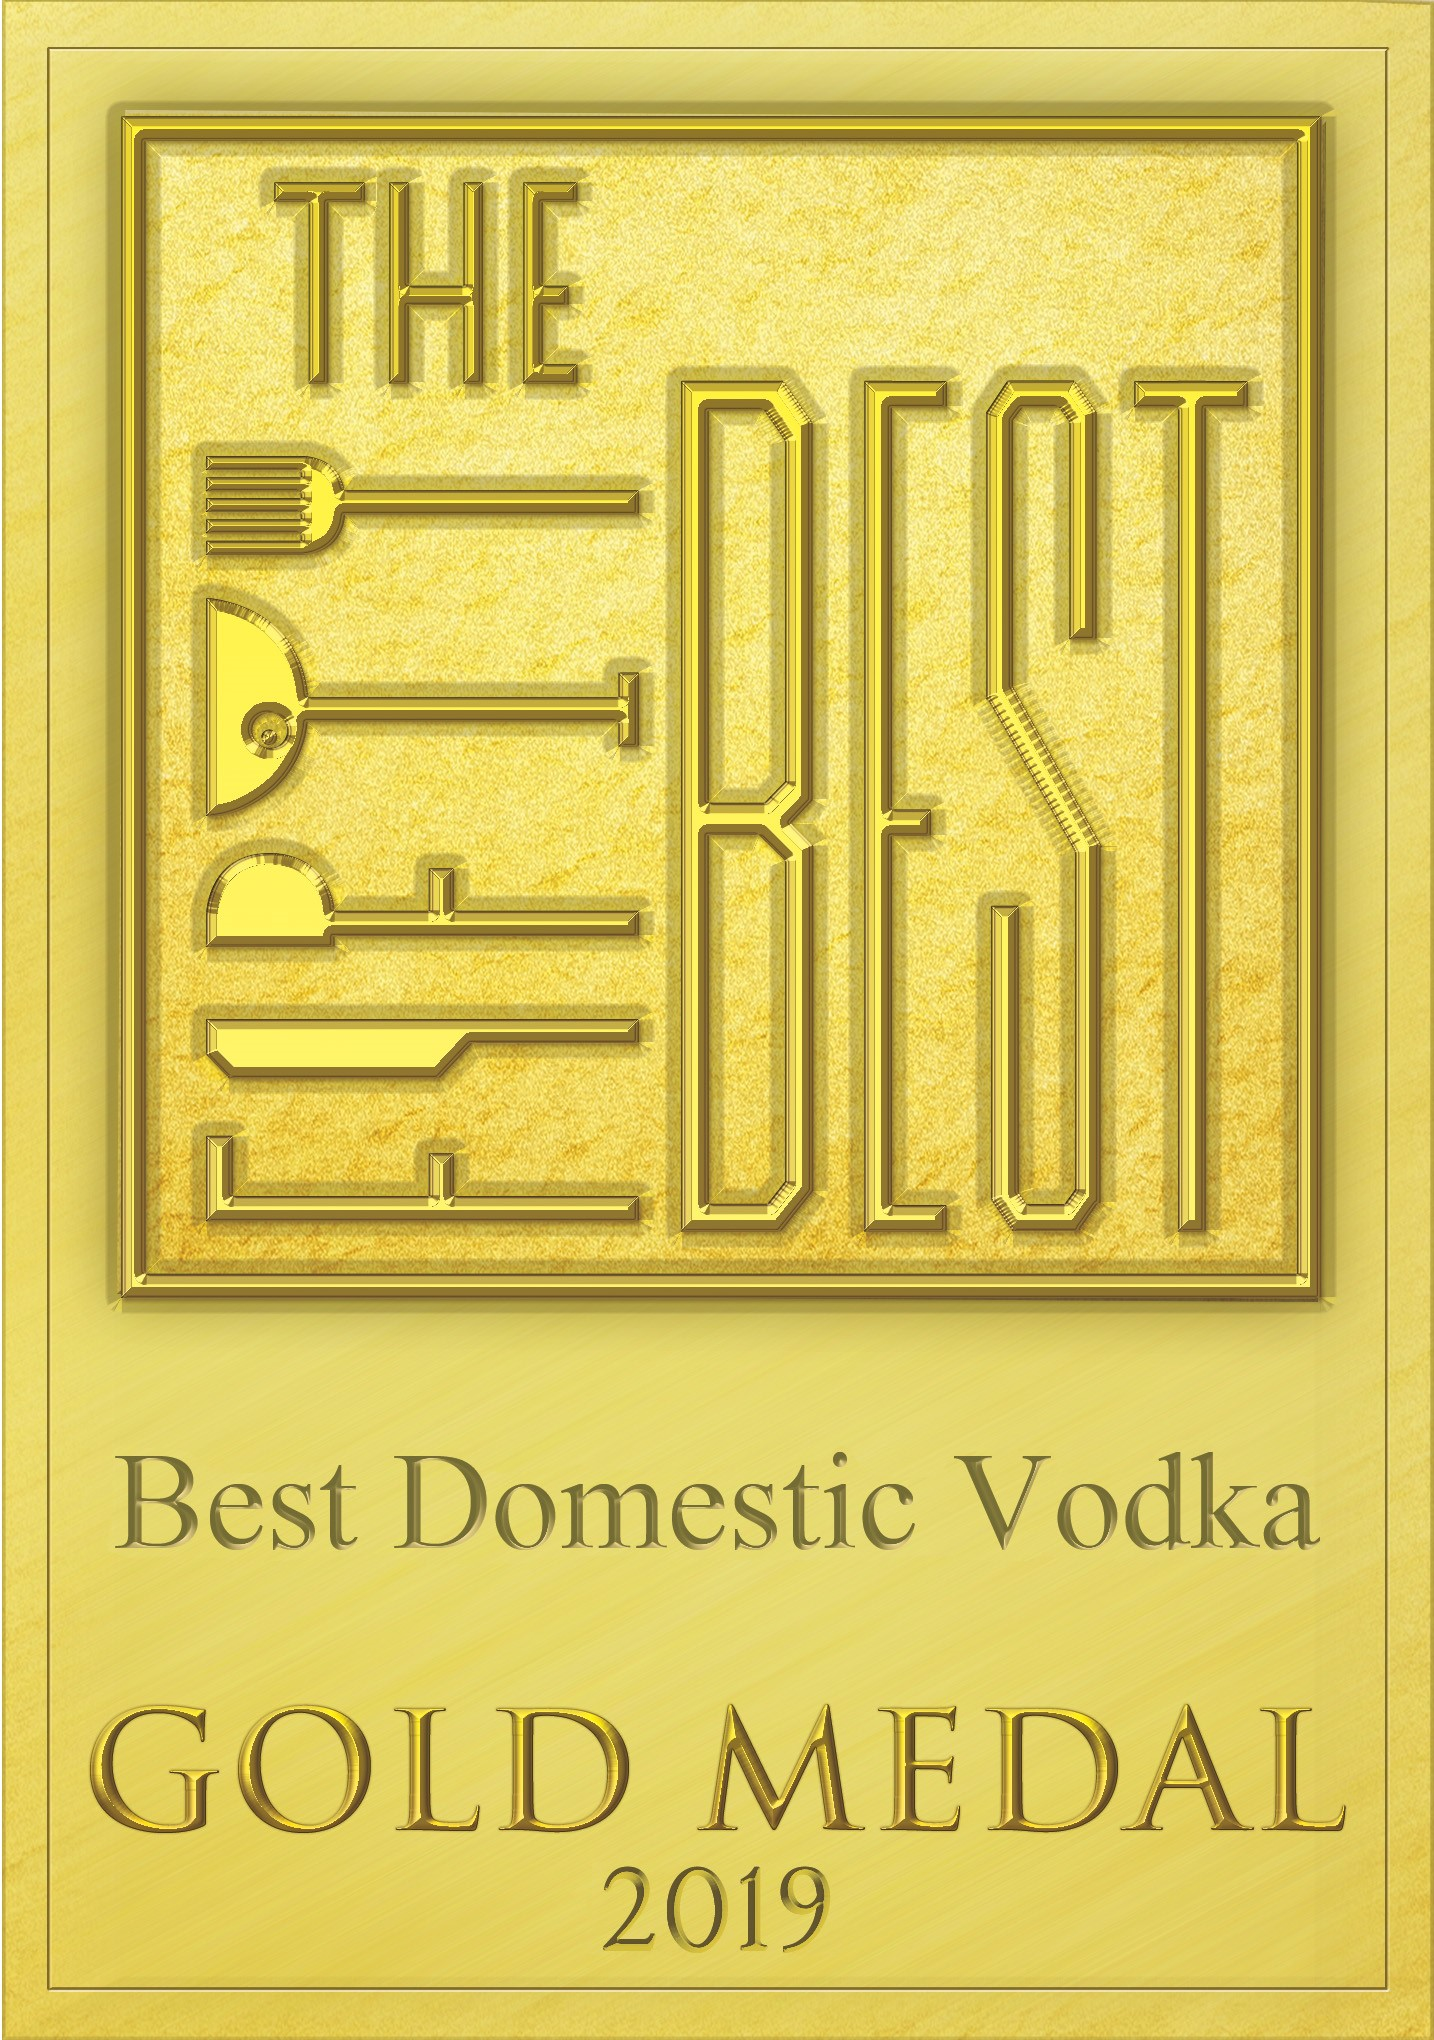 "Wild Rag® Mesquite Bean VODKA Wins the GOLD - New York, NY, (July 15, 2019) – The Fifty Best has once again turned its spotlight on Domestic Vodka. The Fifty Best recently hosted an American-made craft vodka tasting, where contenders were evaluated for the distinguished ""Best Domestic Vodka"" awards for 2019.The Fifty Best is very pleased to announce that Wild Rag Mesquite Bean Vodka was awarded a Gold medal in New York's 2019"